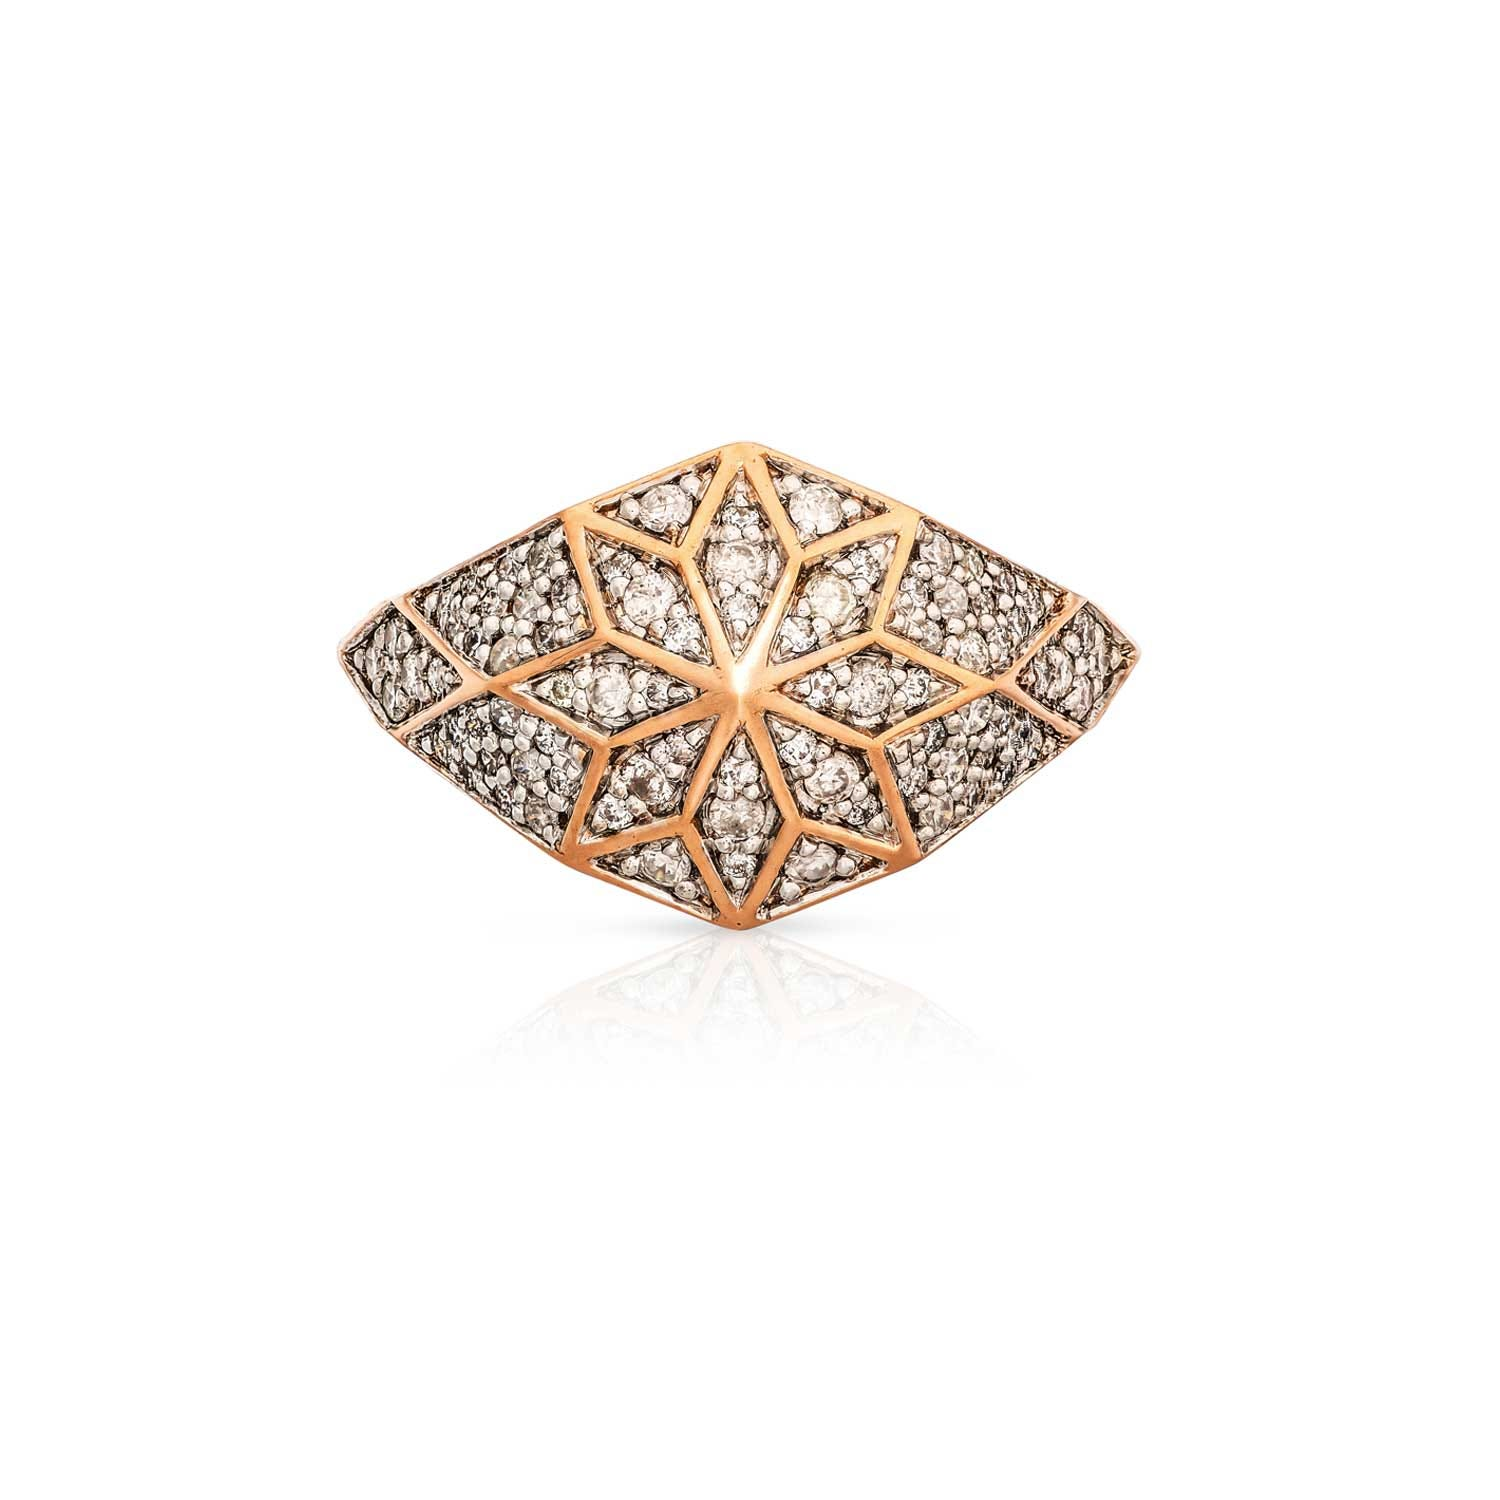 Venus Star Ring. 9k Rose Gold / Diamond  - Thumbnail